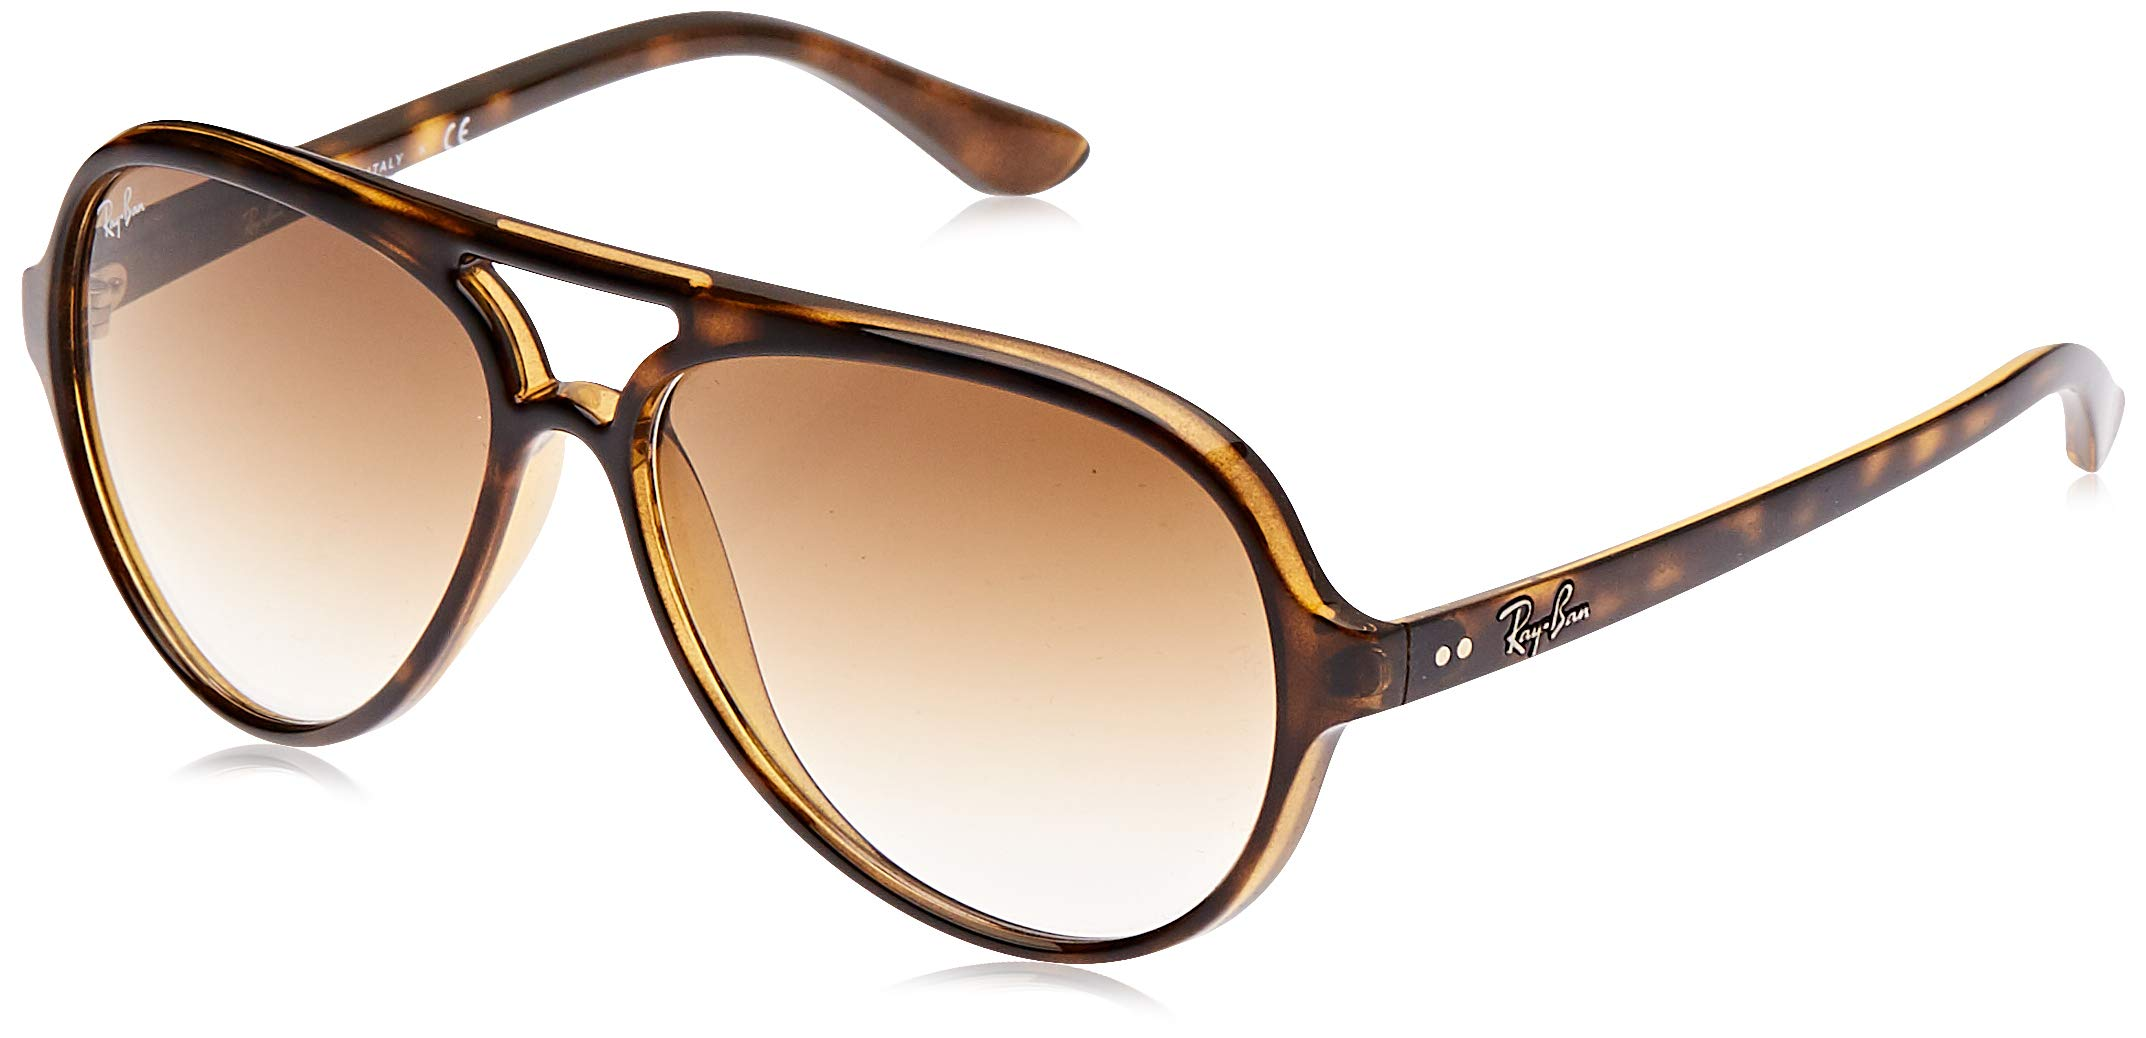 RAY-BAN RB4125 Cats 5000 Aviator Sunglasses, Light Havana/Brown Gradient, 59 mm by RAY-BAN